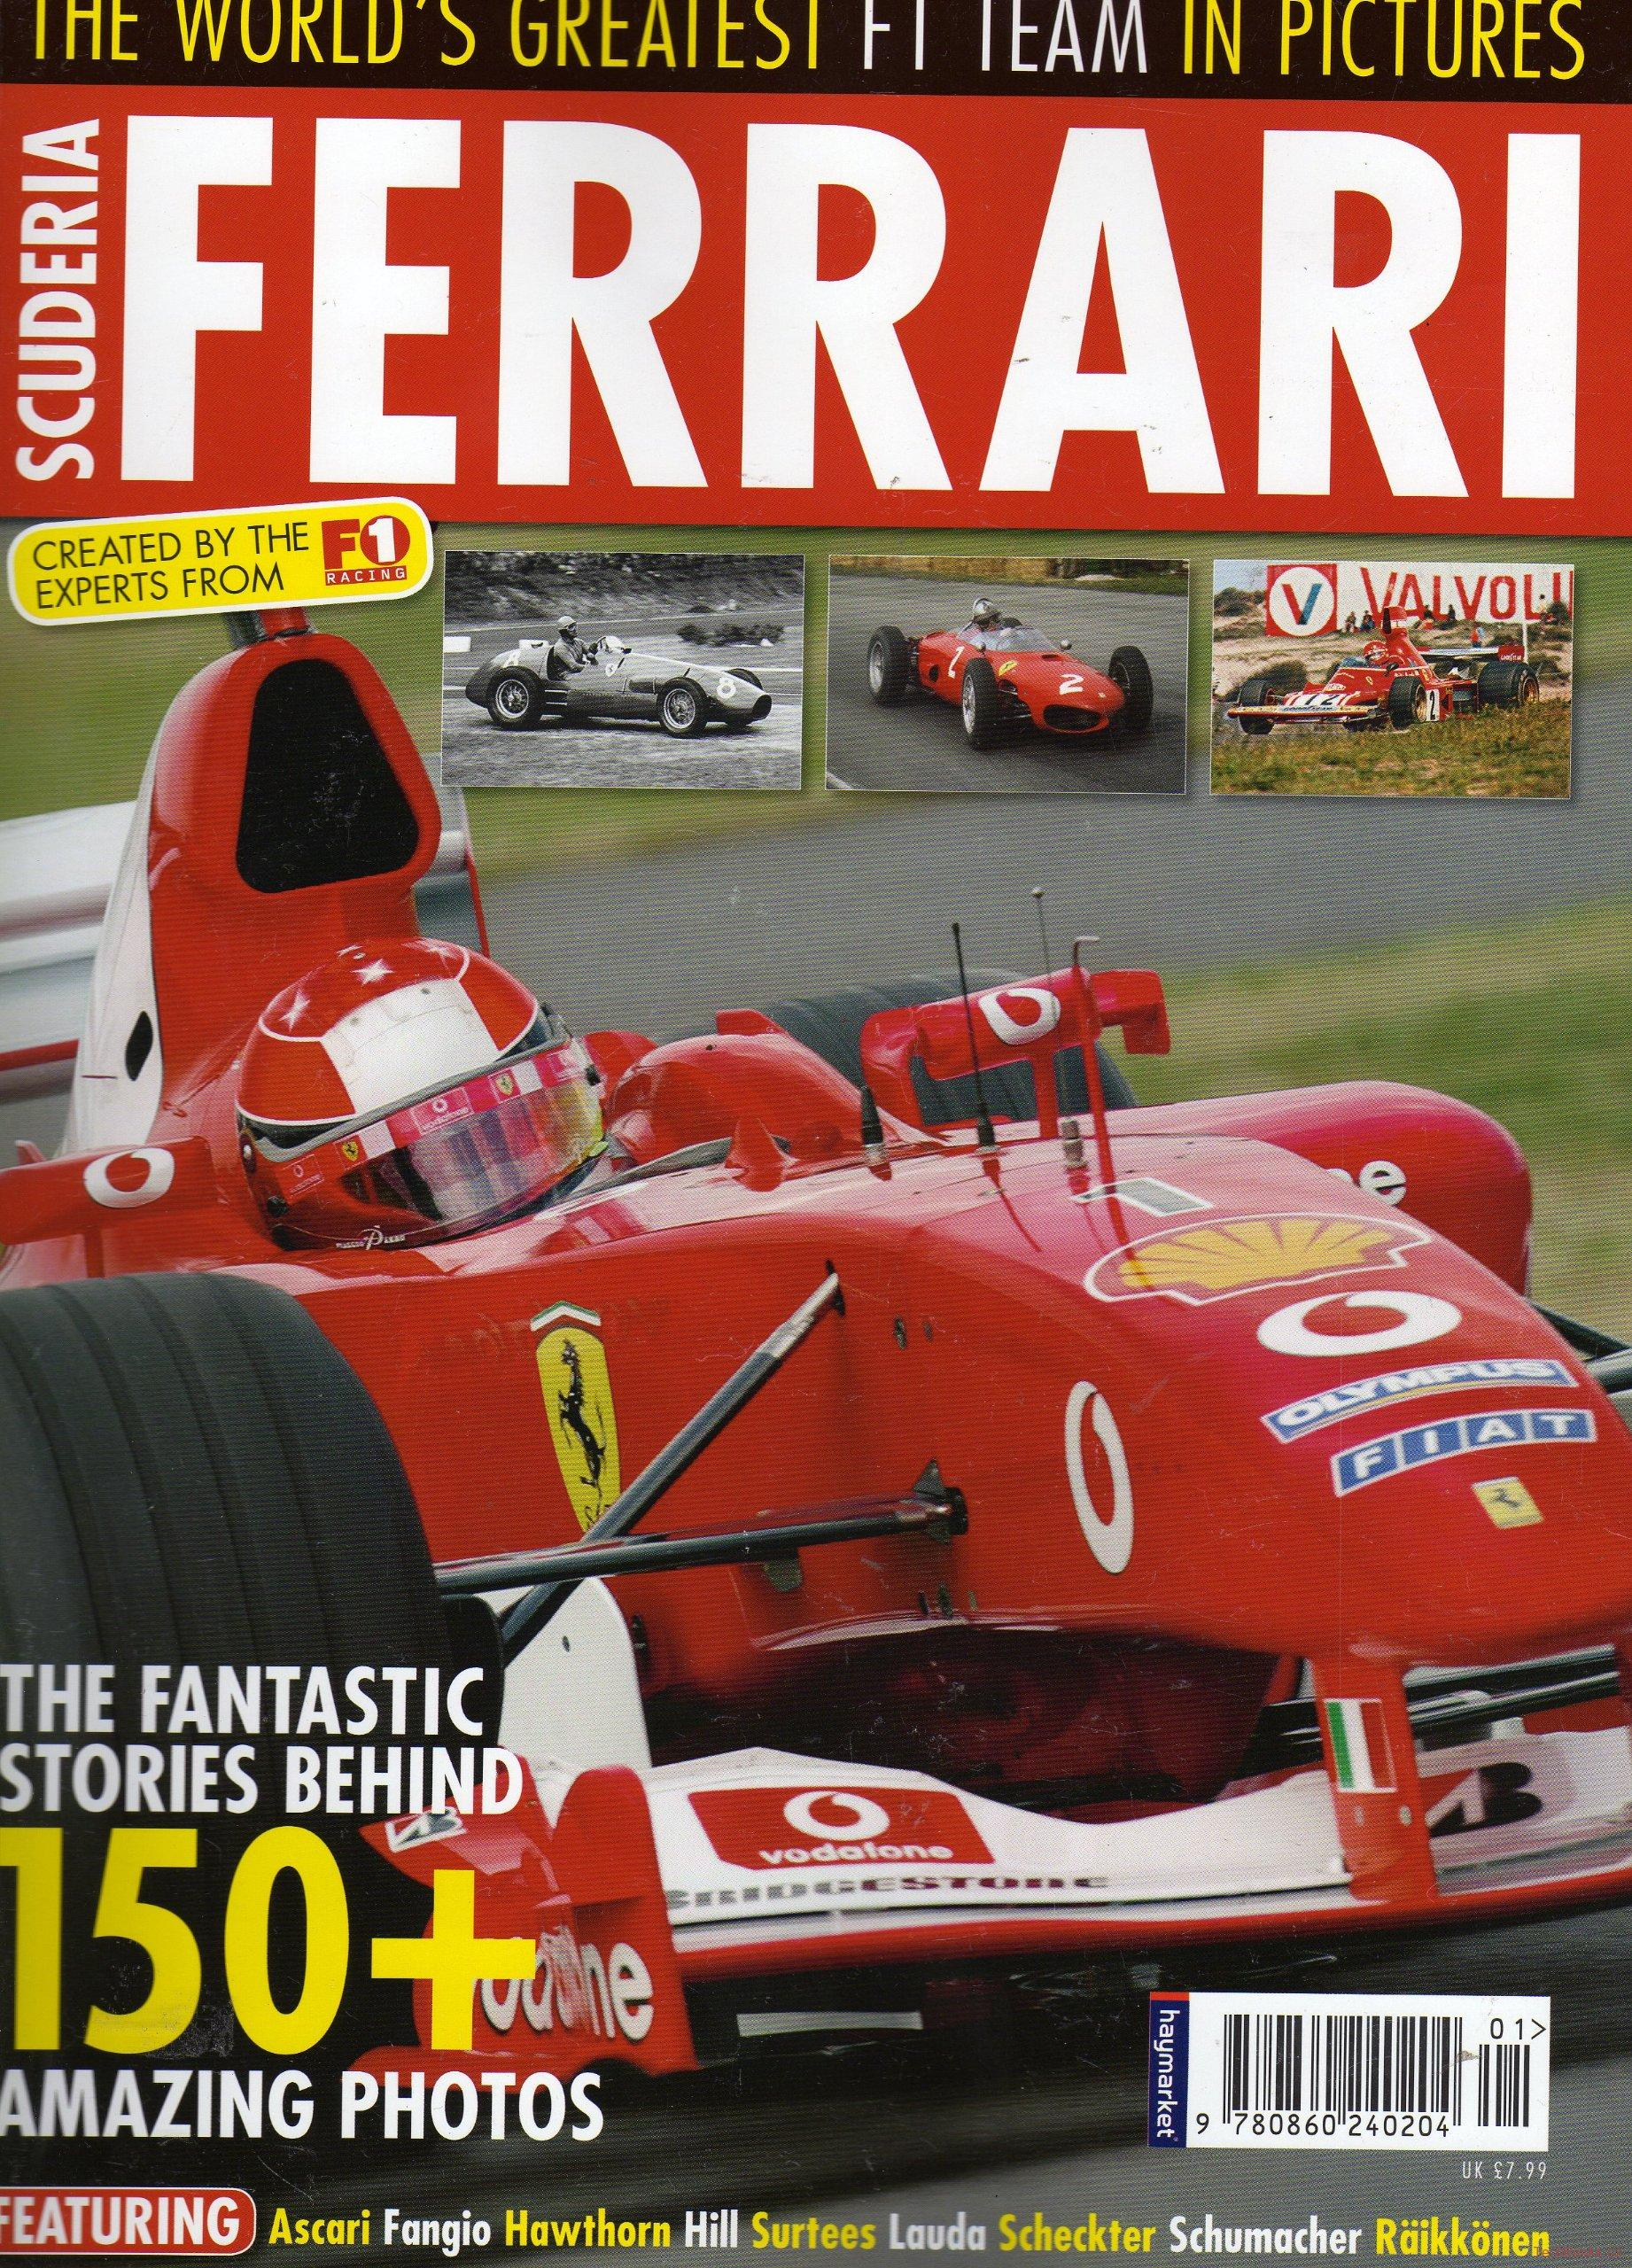 Scuderia Ferrari: The World's Greatest F1 Team in Pictures